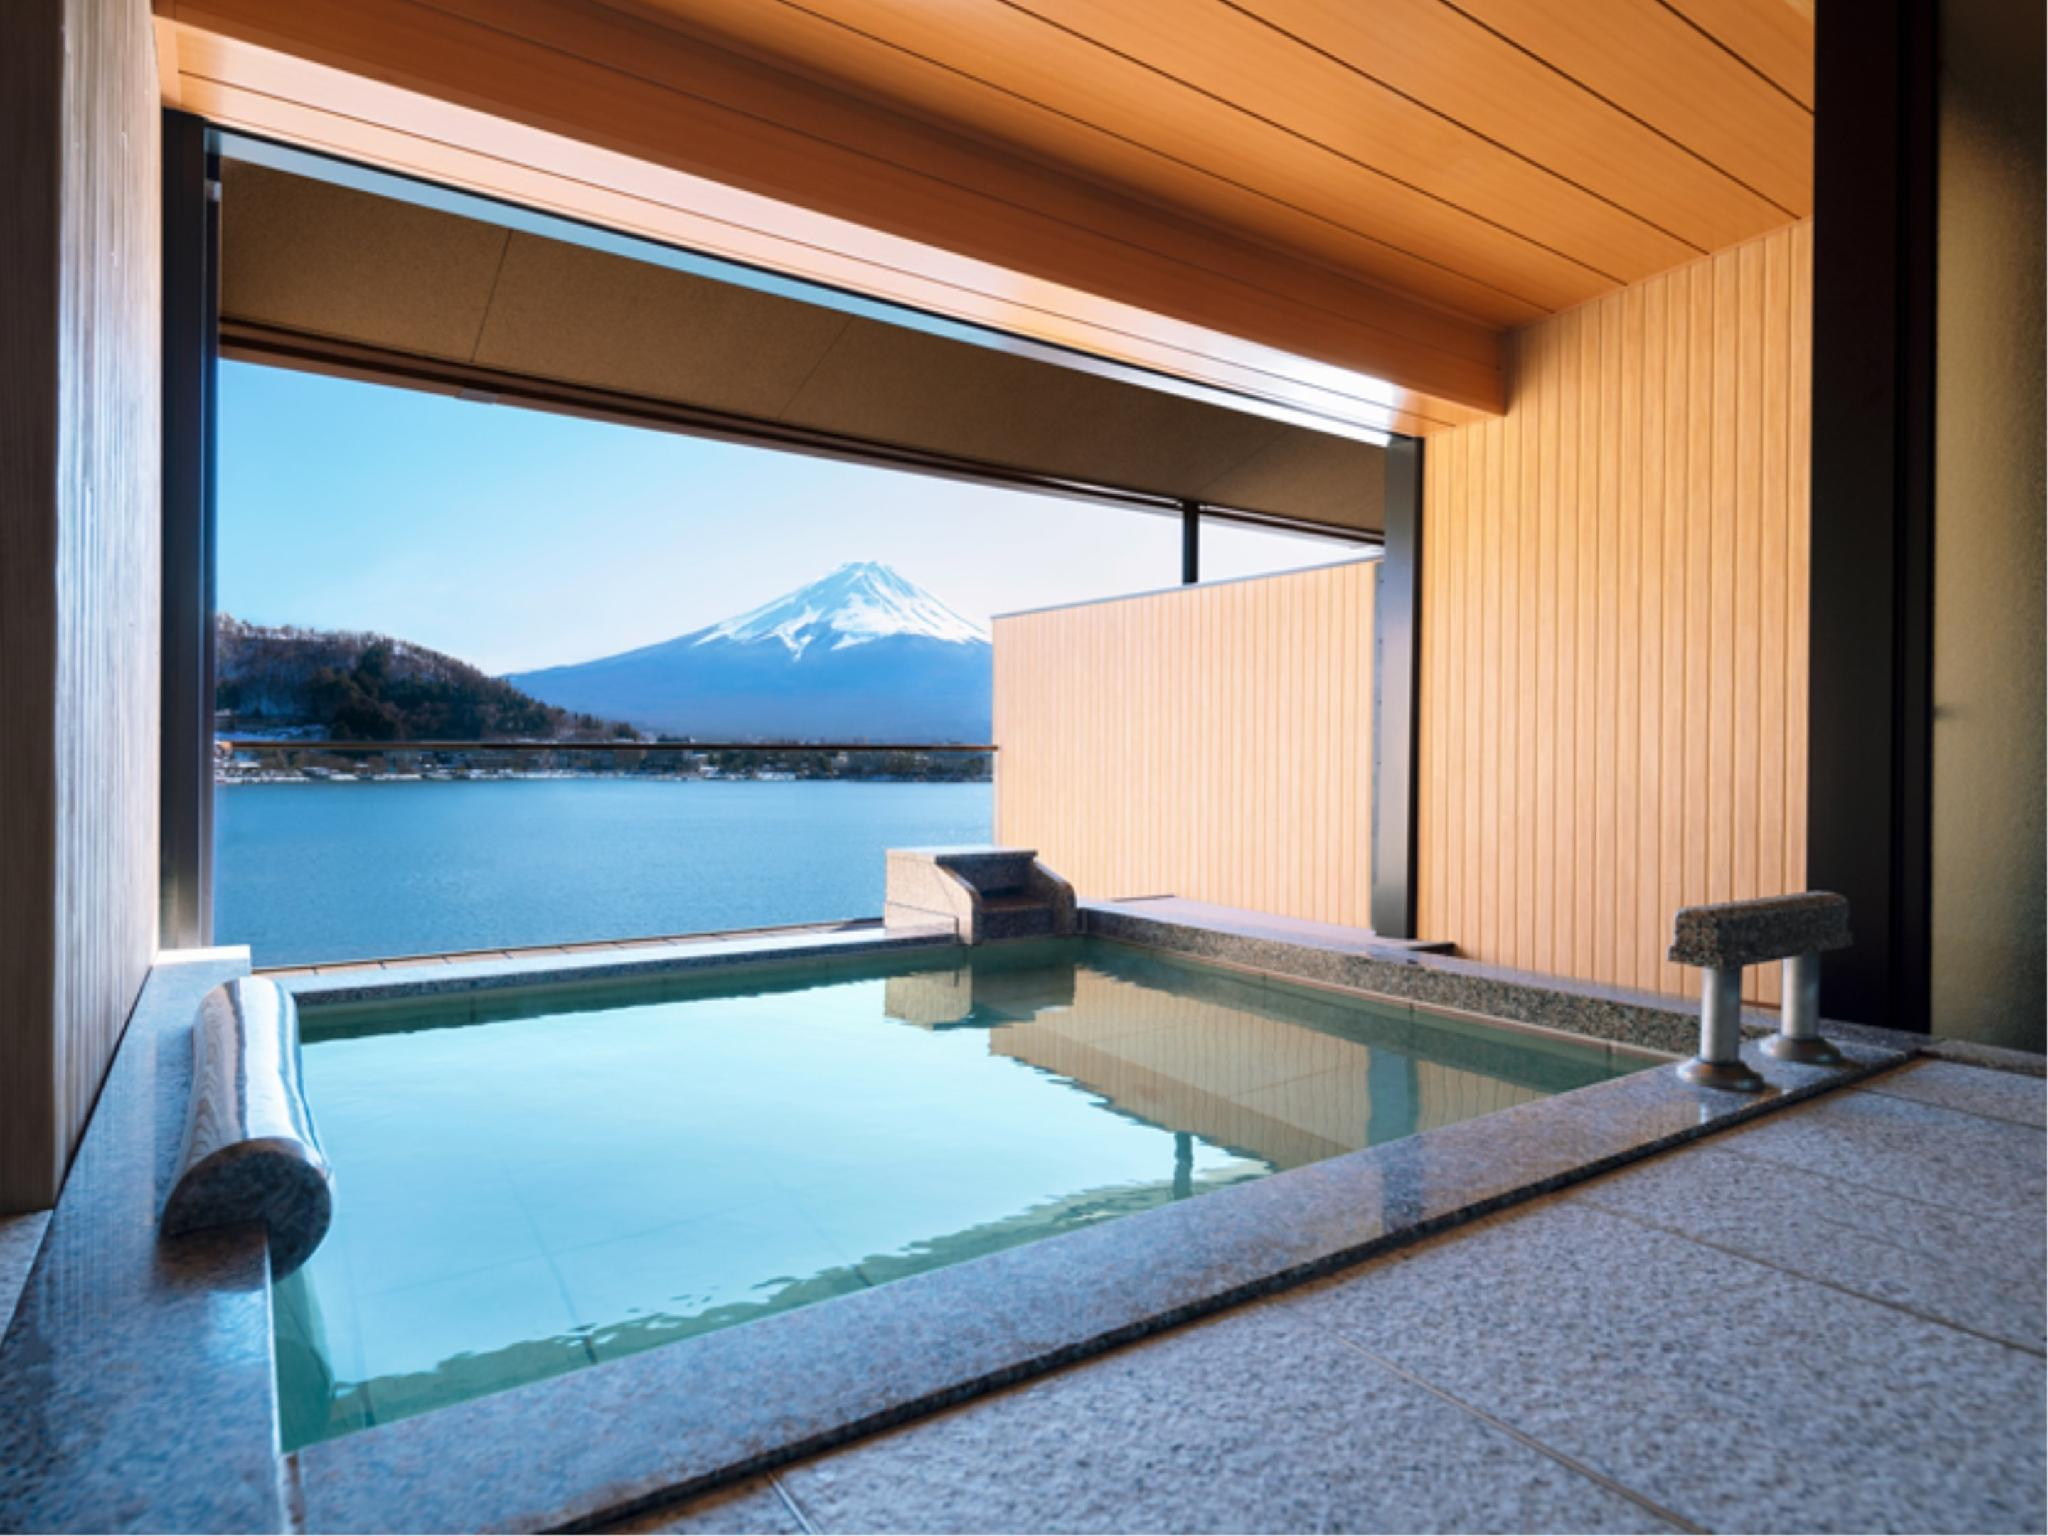 Deluxe Japanese/Western-style Room with Open-air Bath (2 Beds)